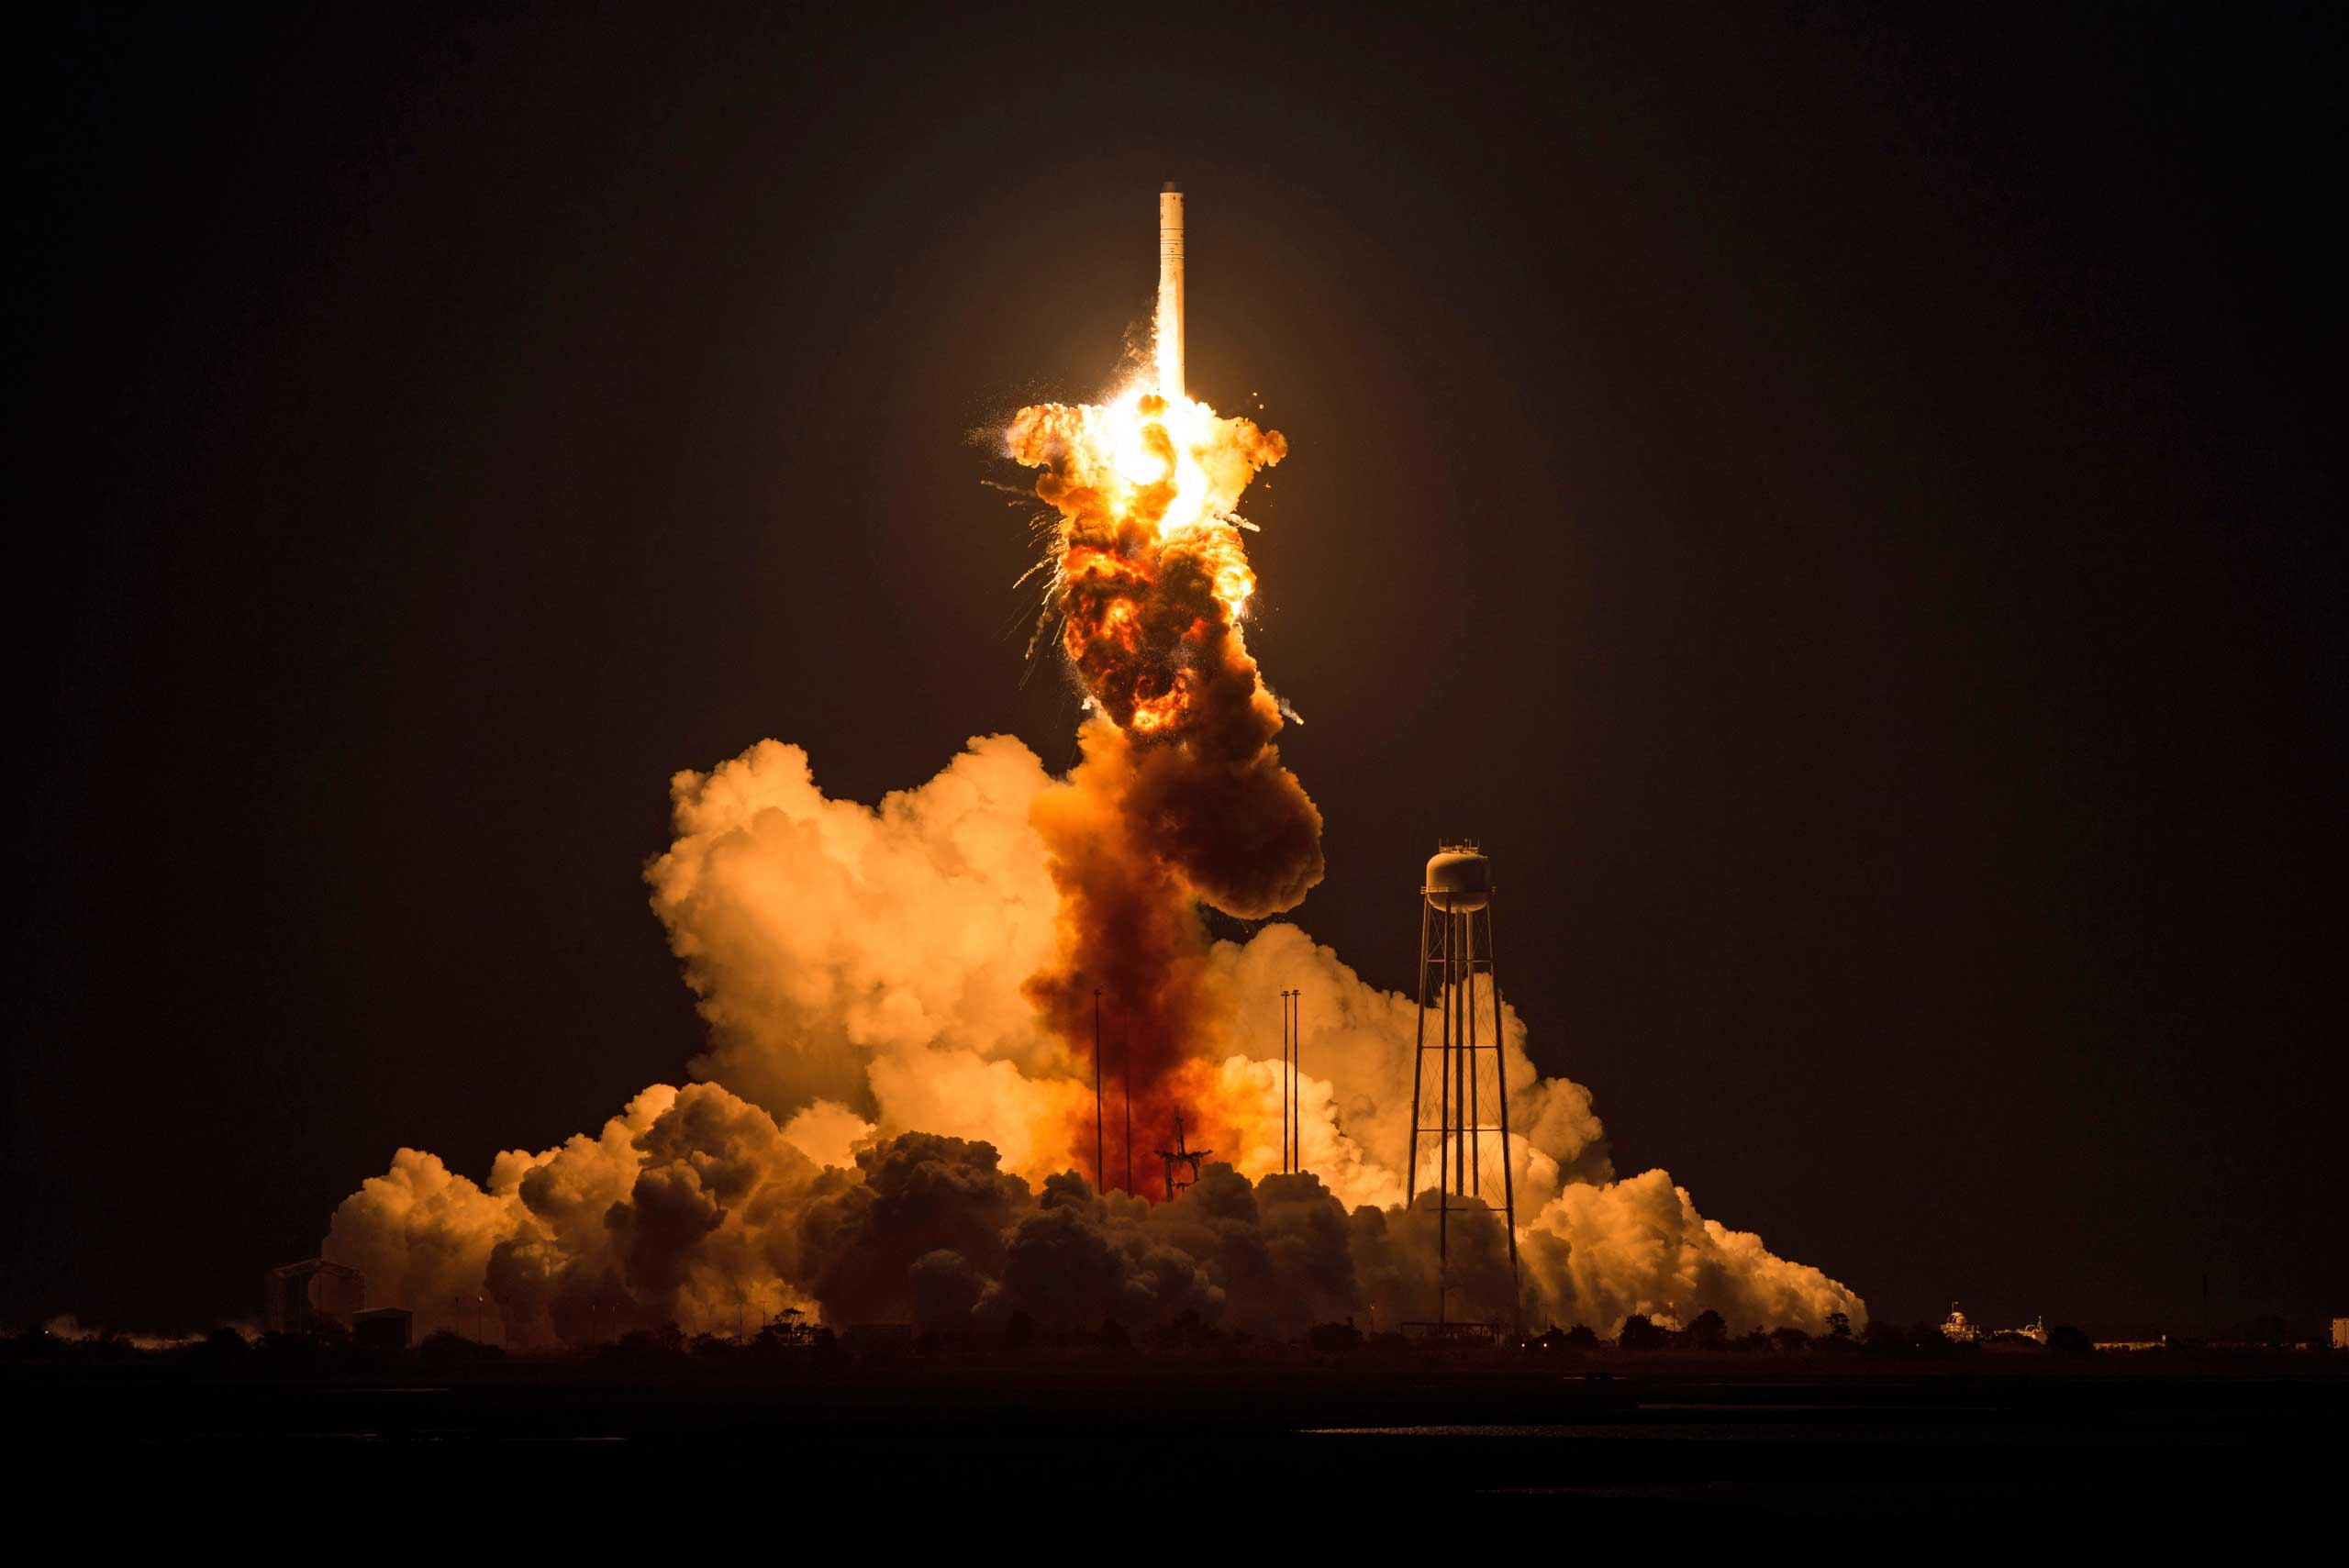 Oct. 28, 2014. This image provided by NASA shows the Orbital Sciences Corporation Antares rocket, with the Cygnus spacecraft onboard suffers a catastrophic anomaly moments after launch from the Mid-Atlantic Regional Spaceport Pad 0A, at NASA's Wallops Flight Facility in Virginia. The Cygnus spacecraft was filled with about 5,000 pounds of supplies slated for the International Space Station, including science experiments, experiment hardware, spare parts, and crew provisions.